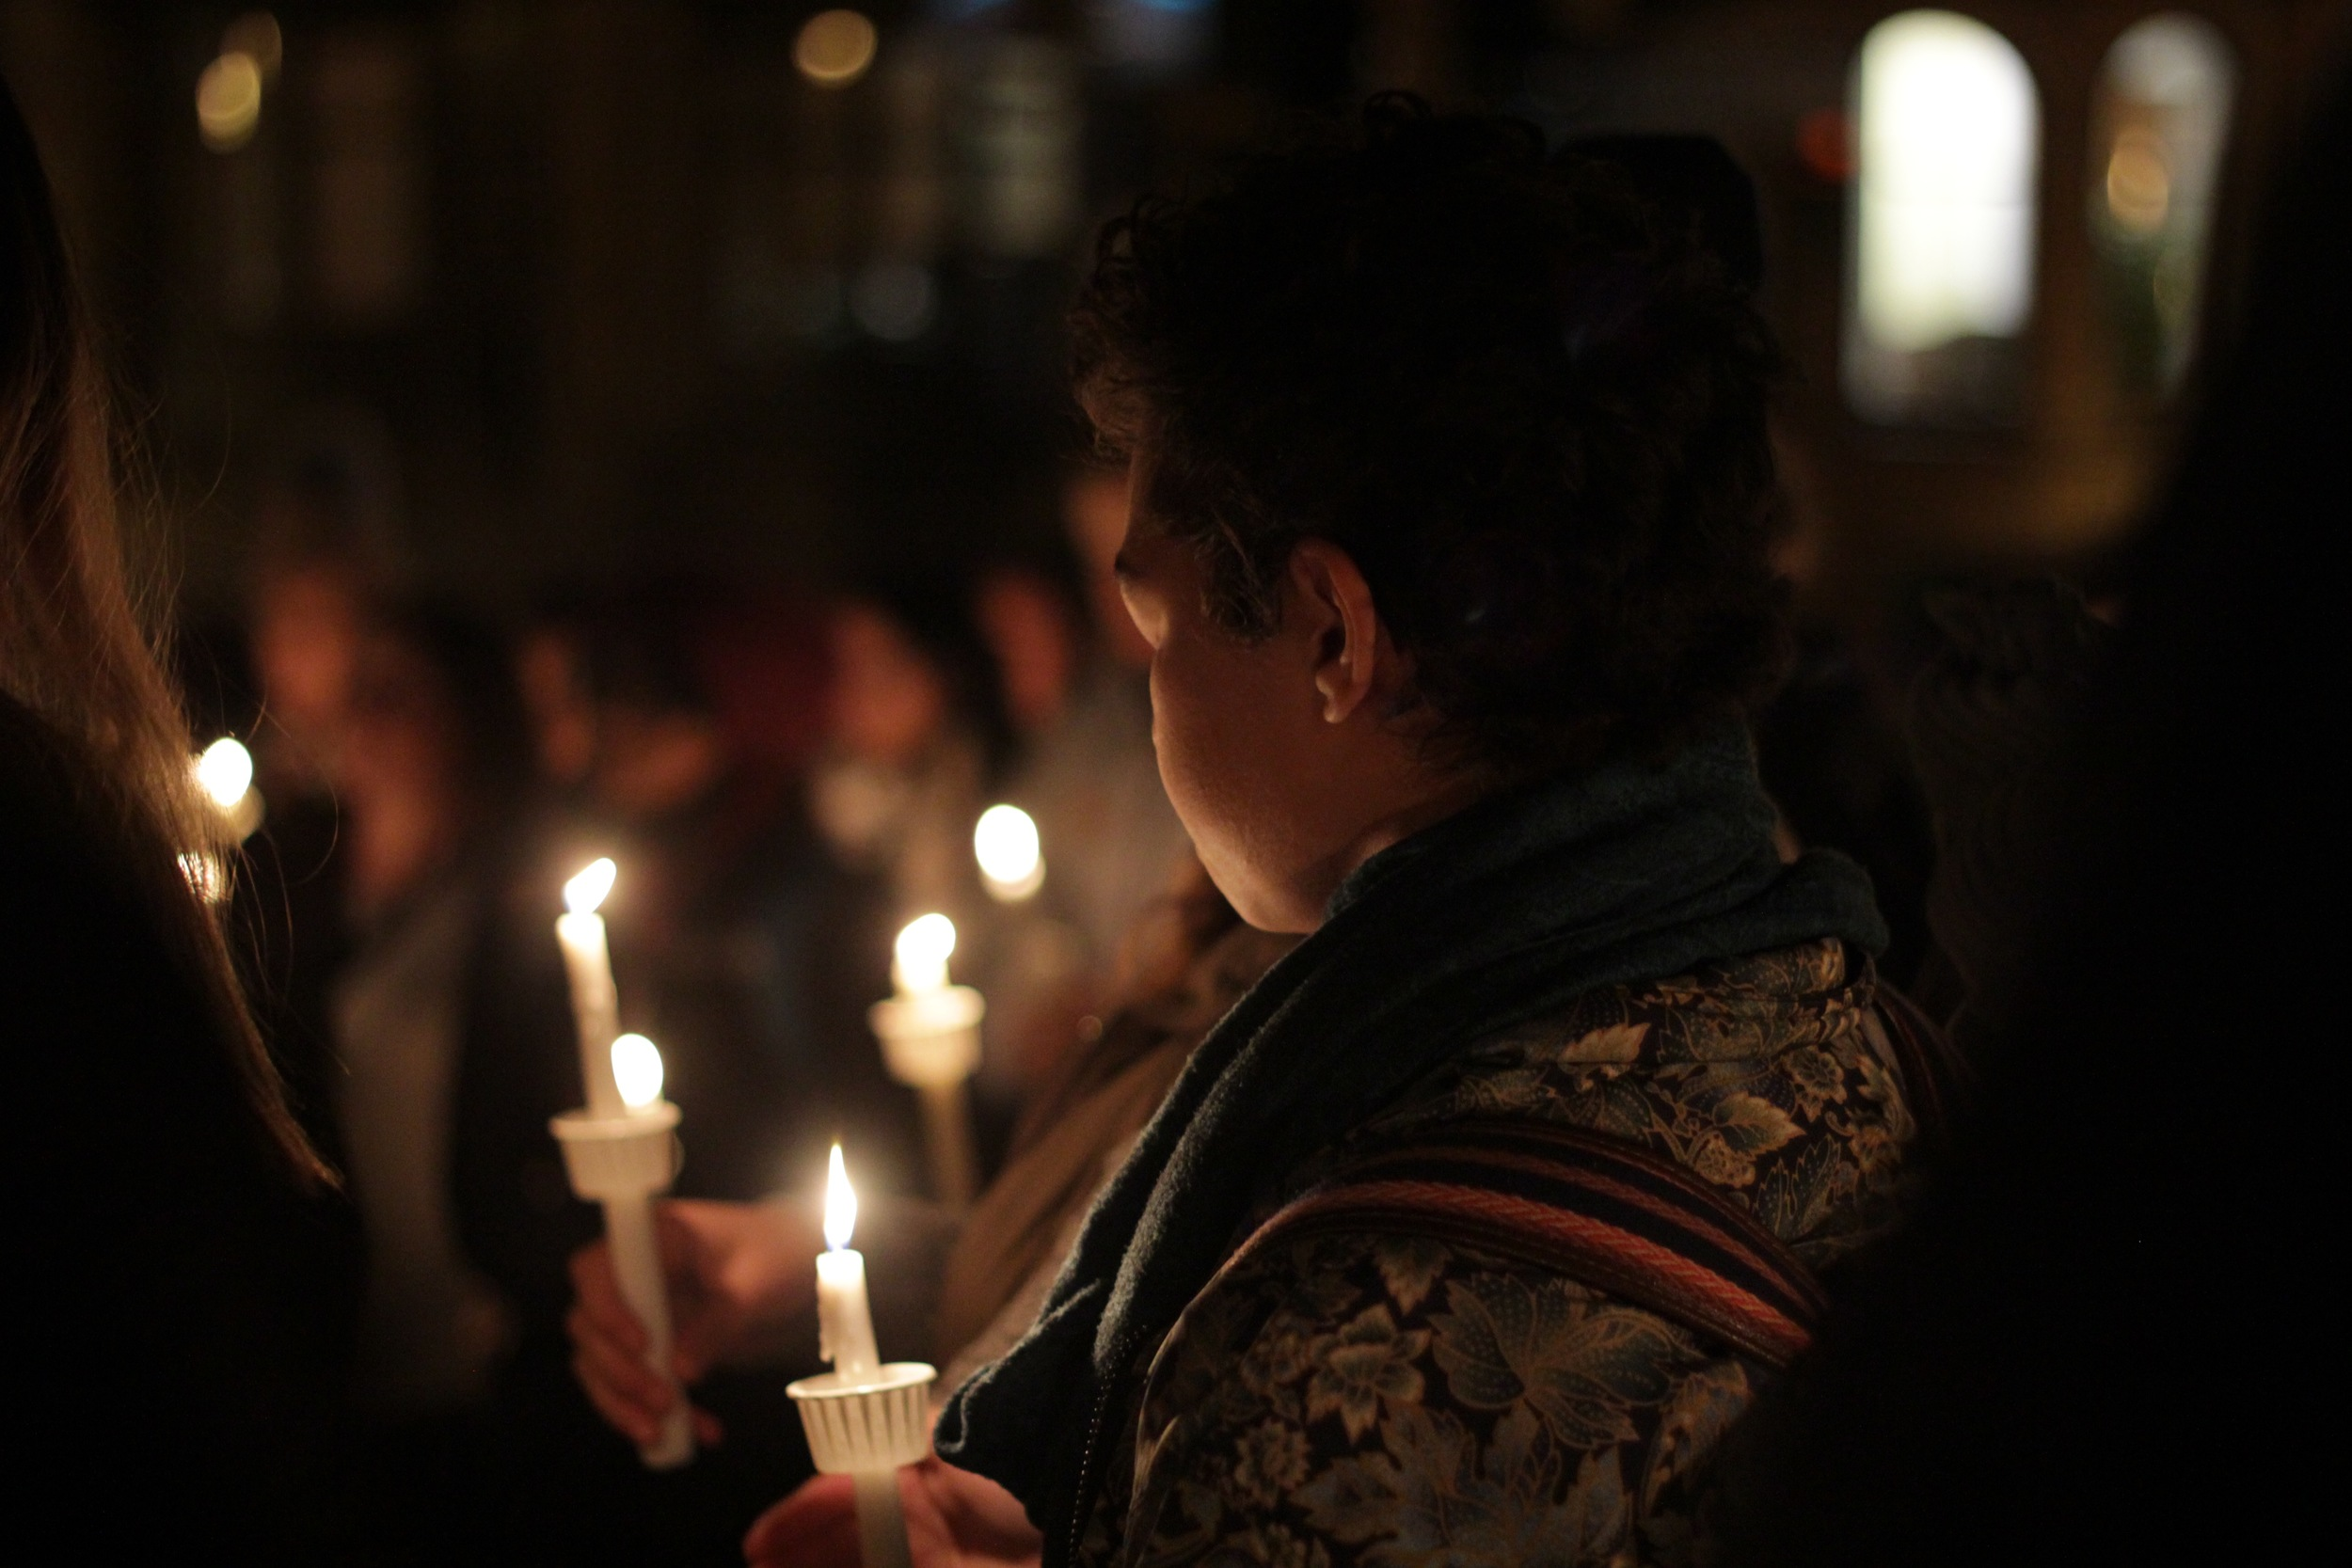 This photo was taken at a  candlelight vigil  responding to the string of terrorist attacks in Paris, Baghdad, Beirut, and several other countries. Photocredit: CJ Ormita